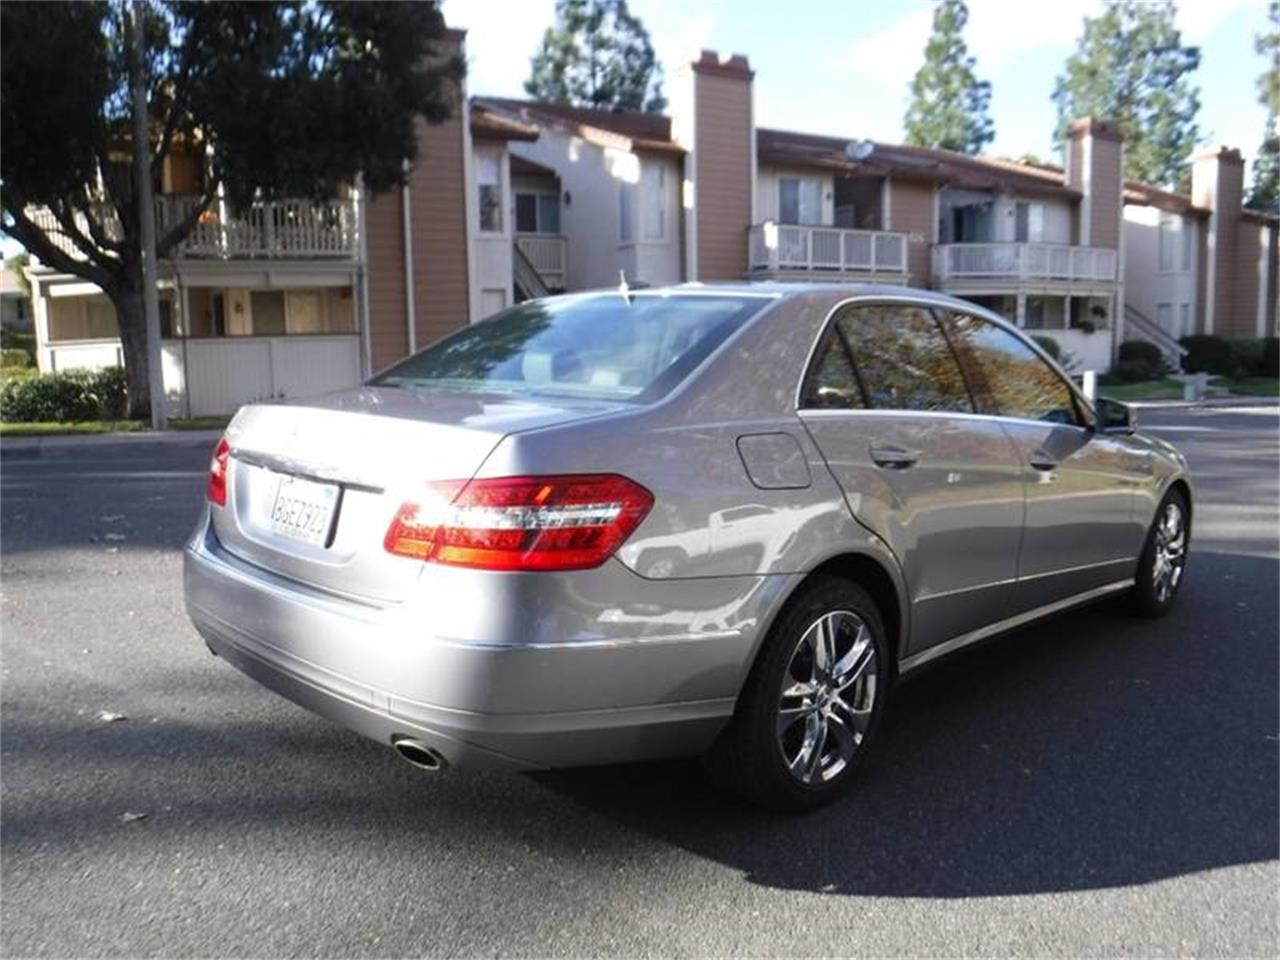 2010 Mercedes-Benz E-Class for sale in Thousand Oaks, CA – photo 5